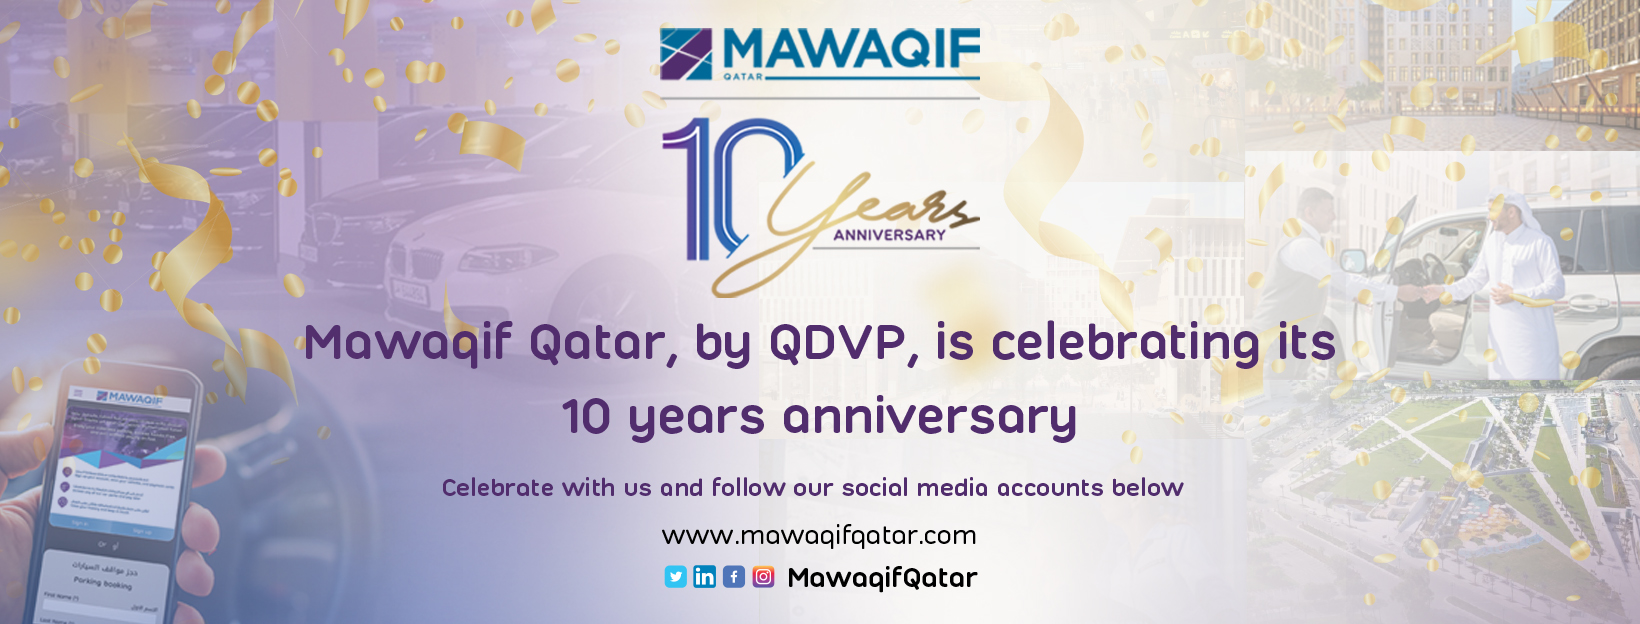 Mawaqif Qatar: Join us on our 10th anniversary celebration and receive a mystery gift!